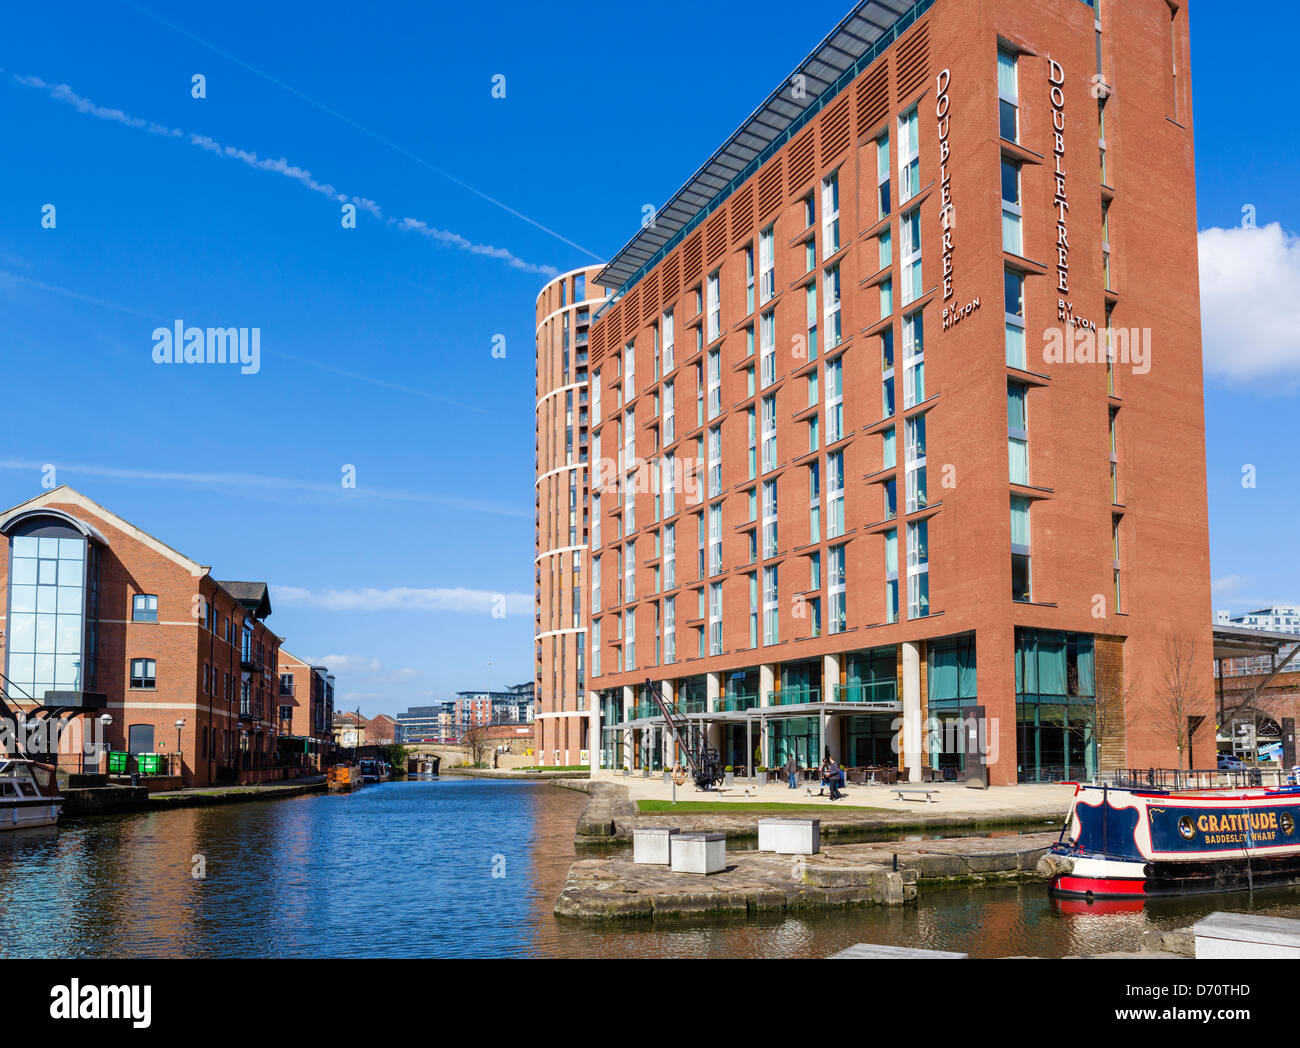 The DoubleTree Hotel by Hilton, Granary Wharf, Leeds, West Yorkshire, UK - Stock Image